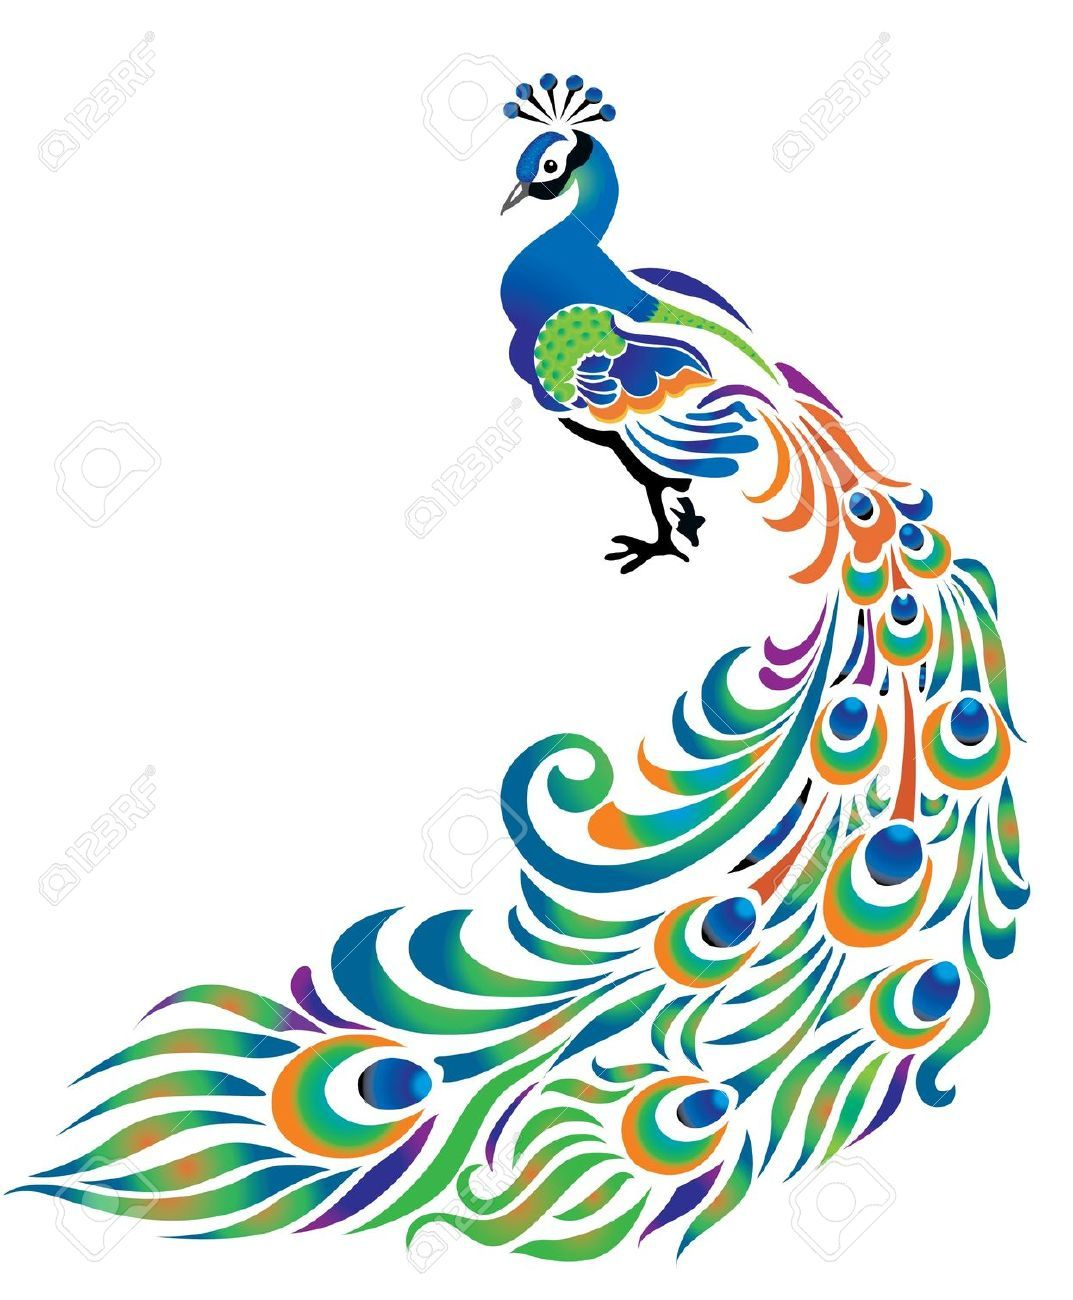 peacock silhouette clip art at getdrawings com free for personal rh getdrawings com